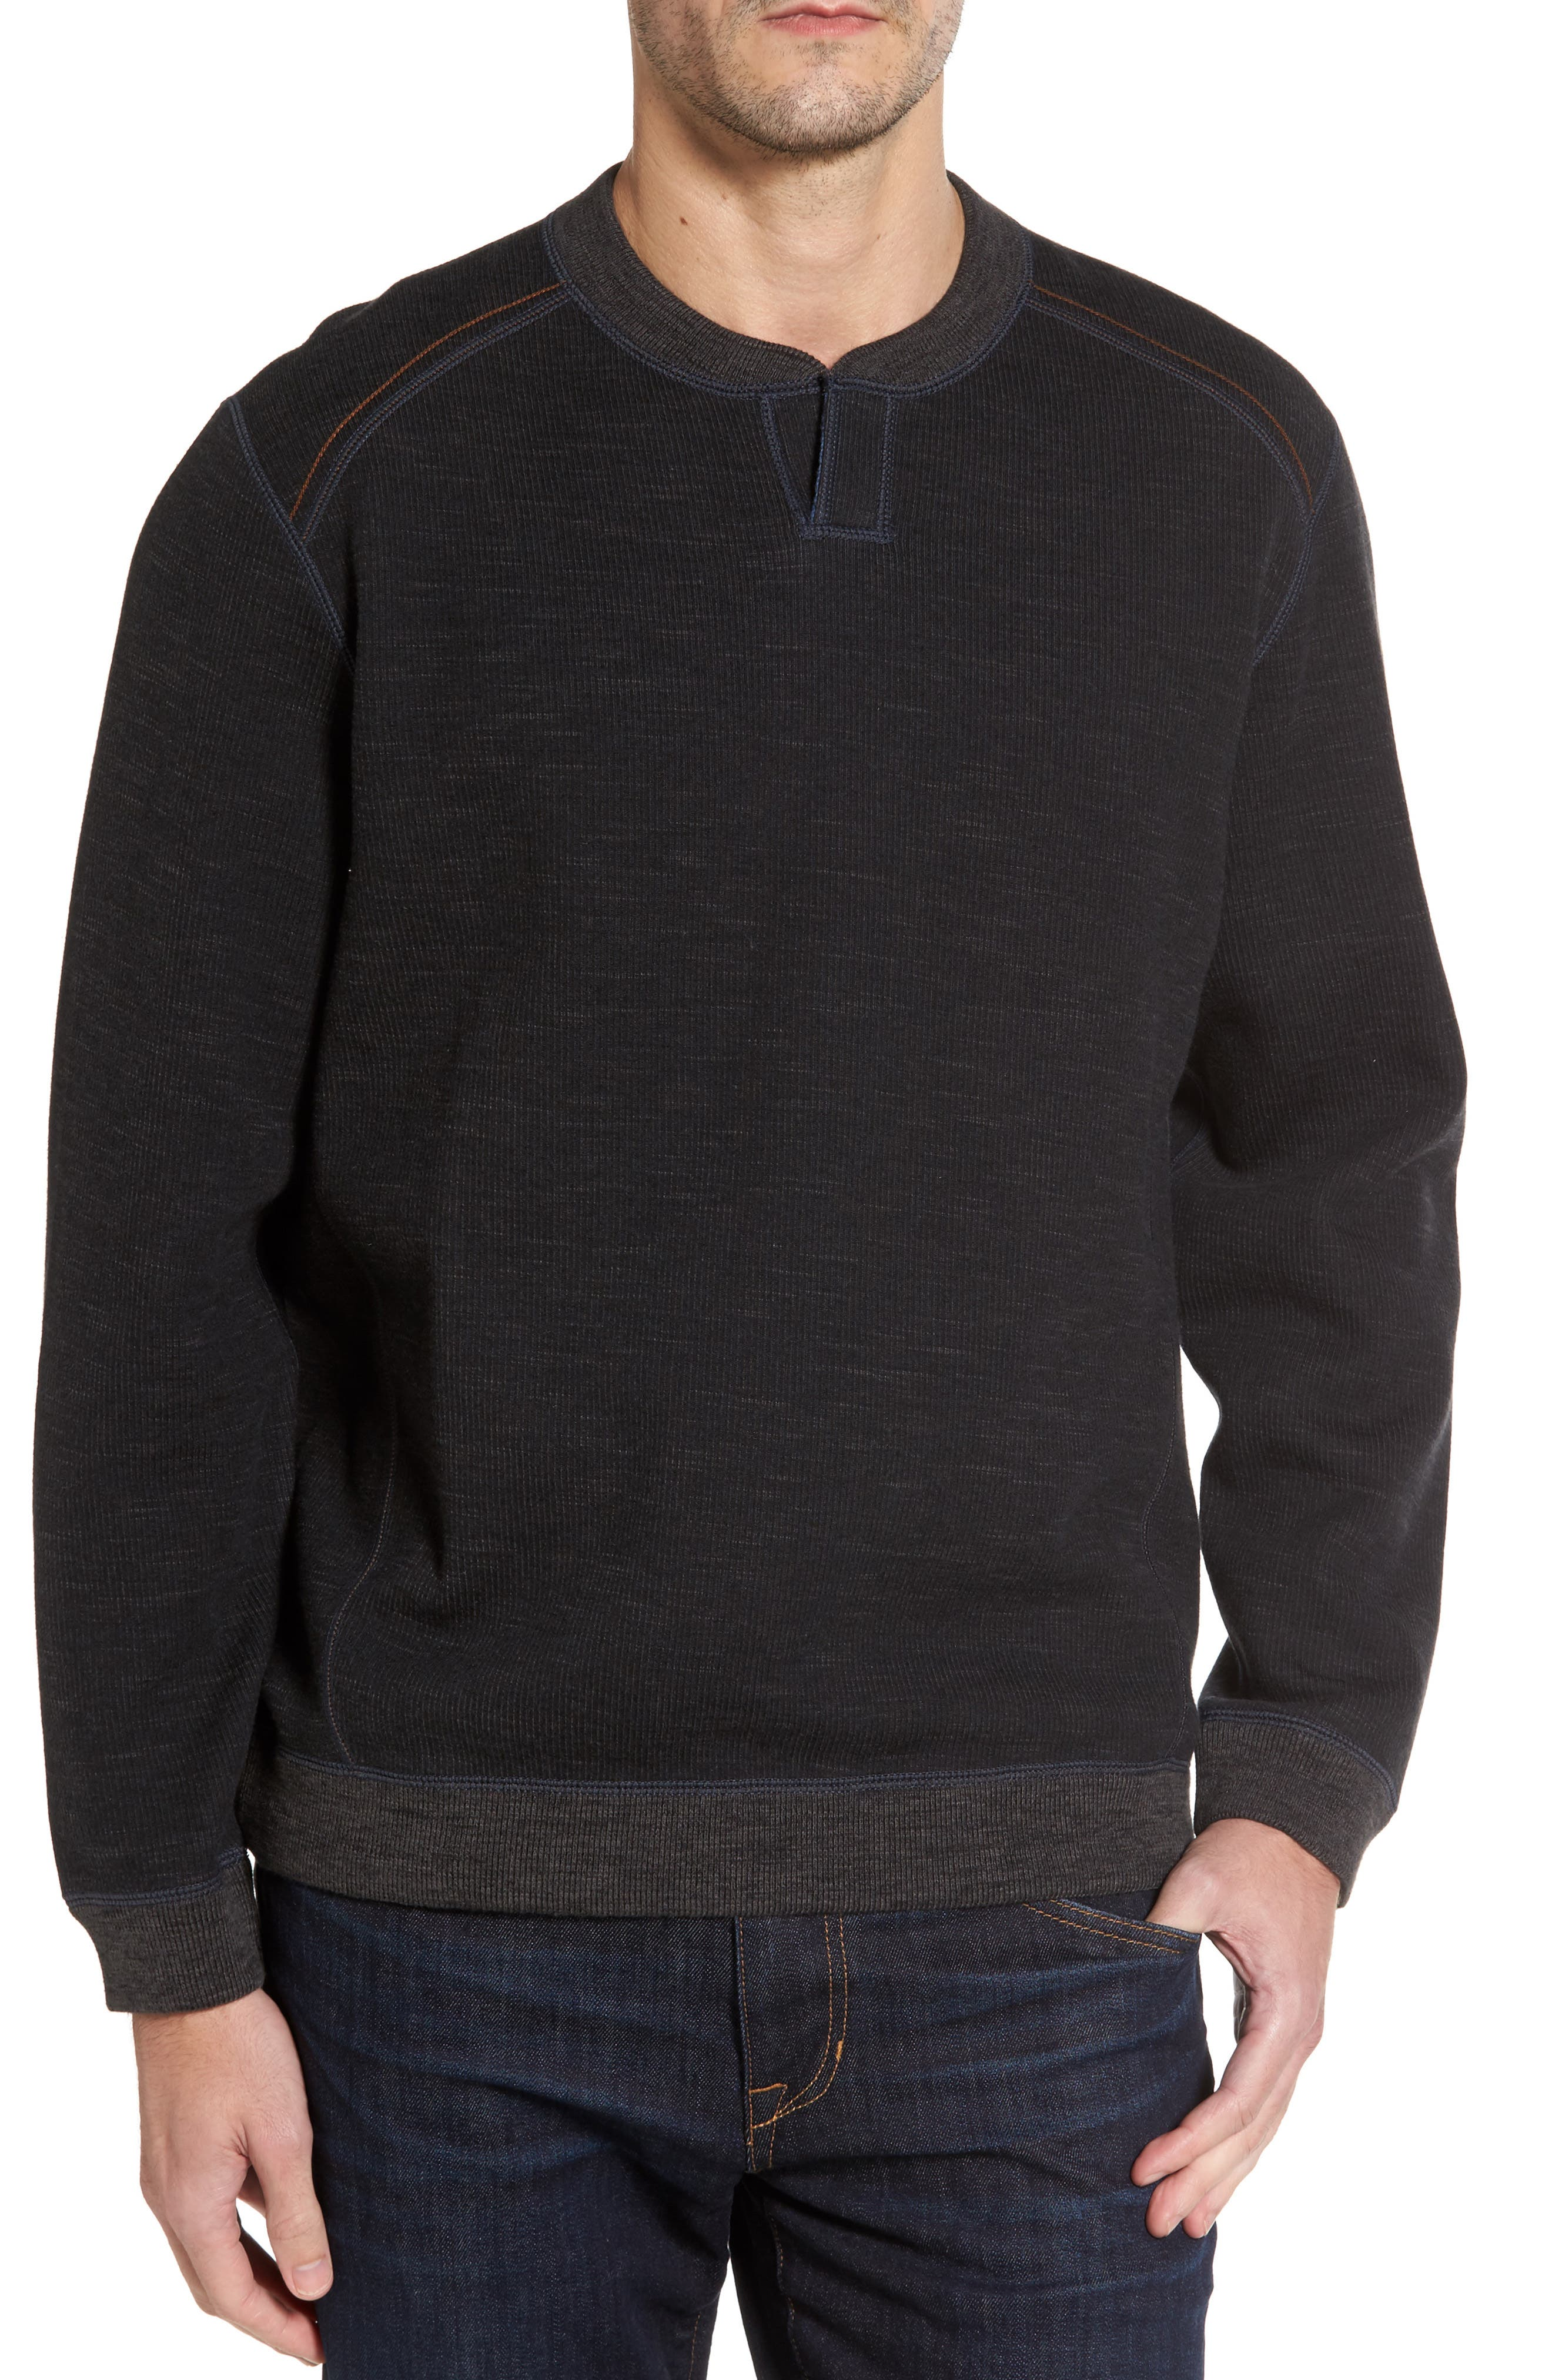 Flipsider Abaco Pullover,                             Main thumbnail 1, color,                             Black